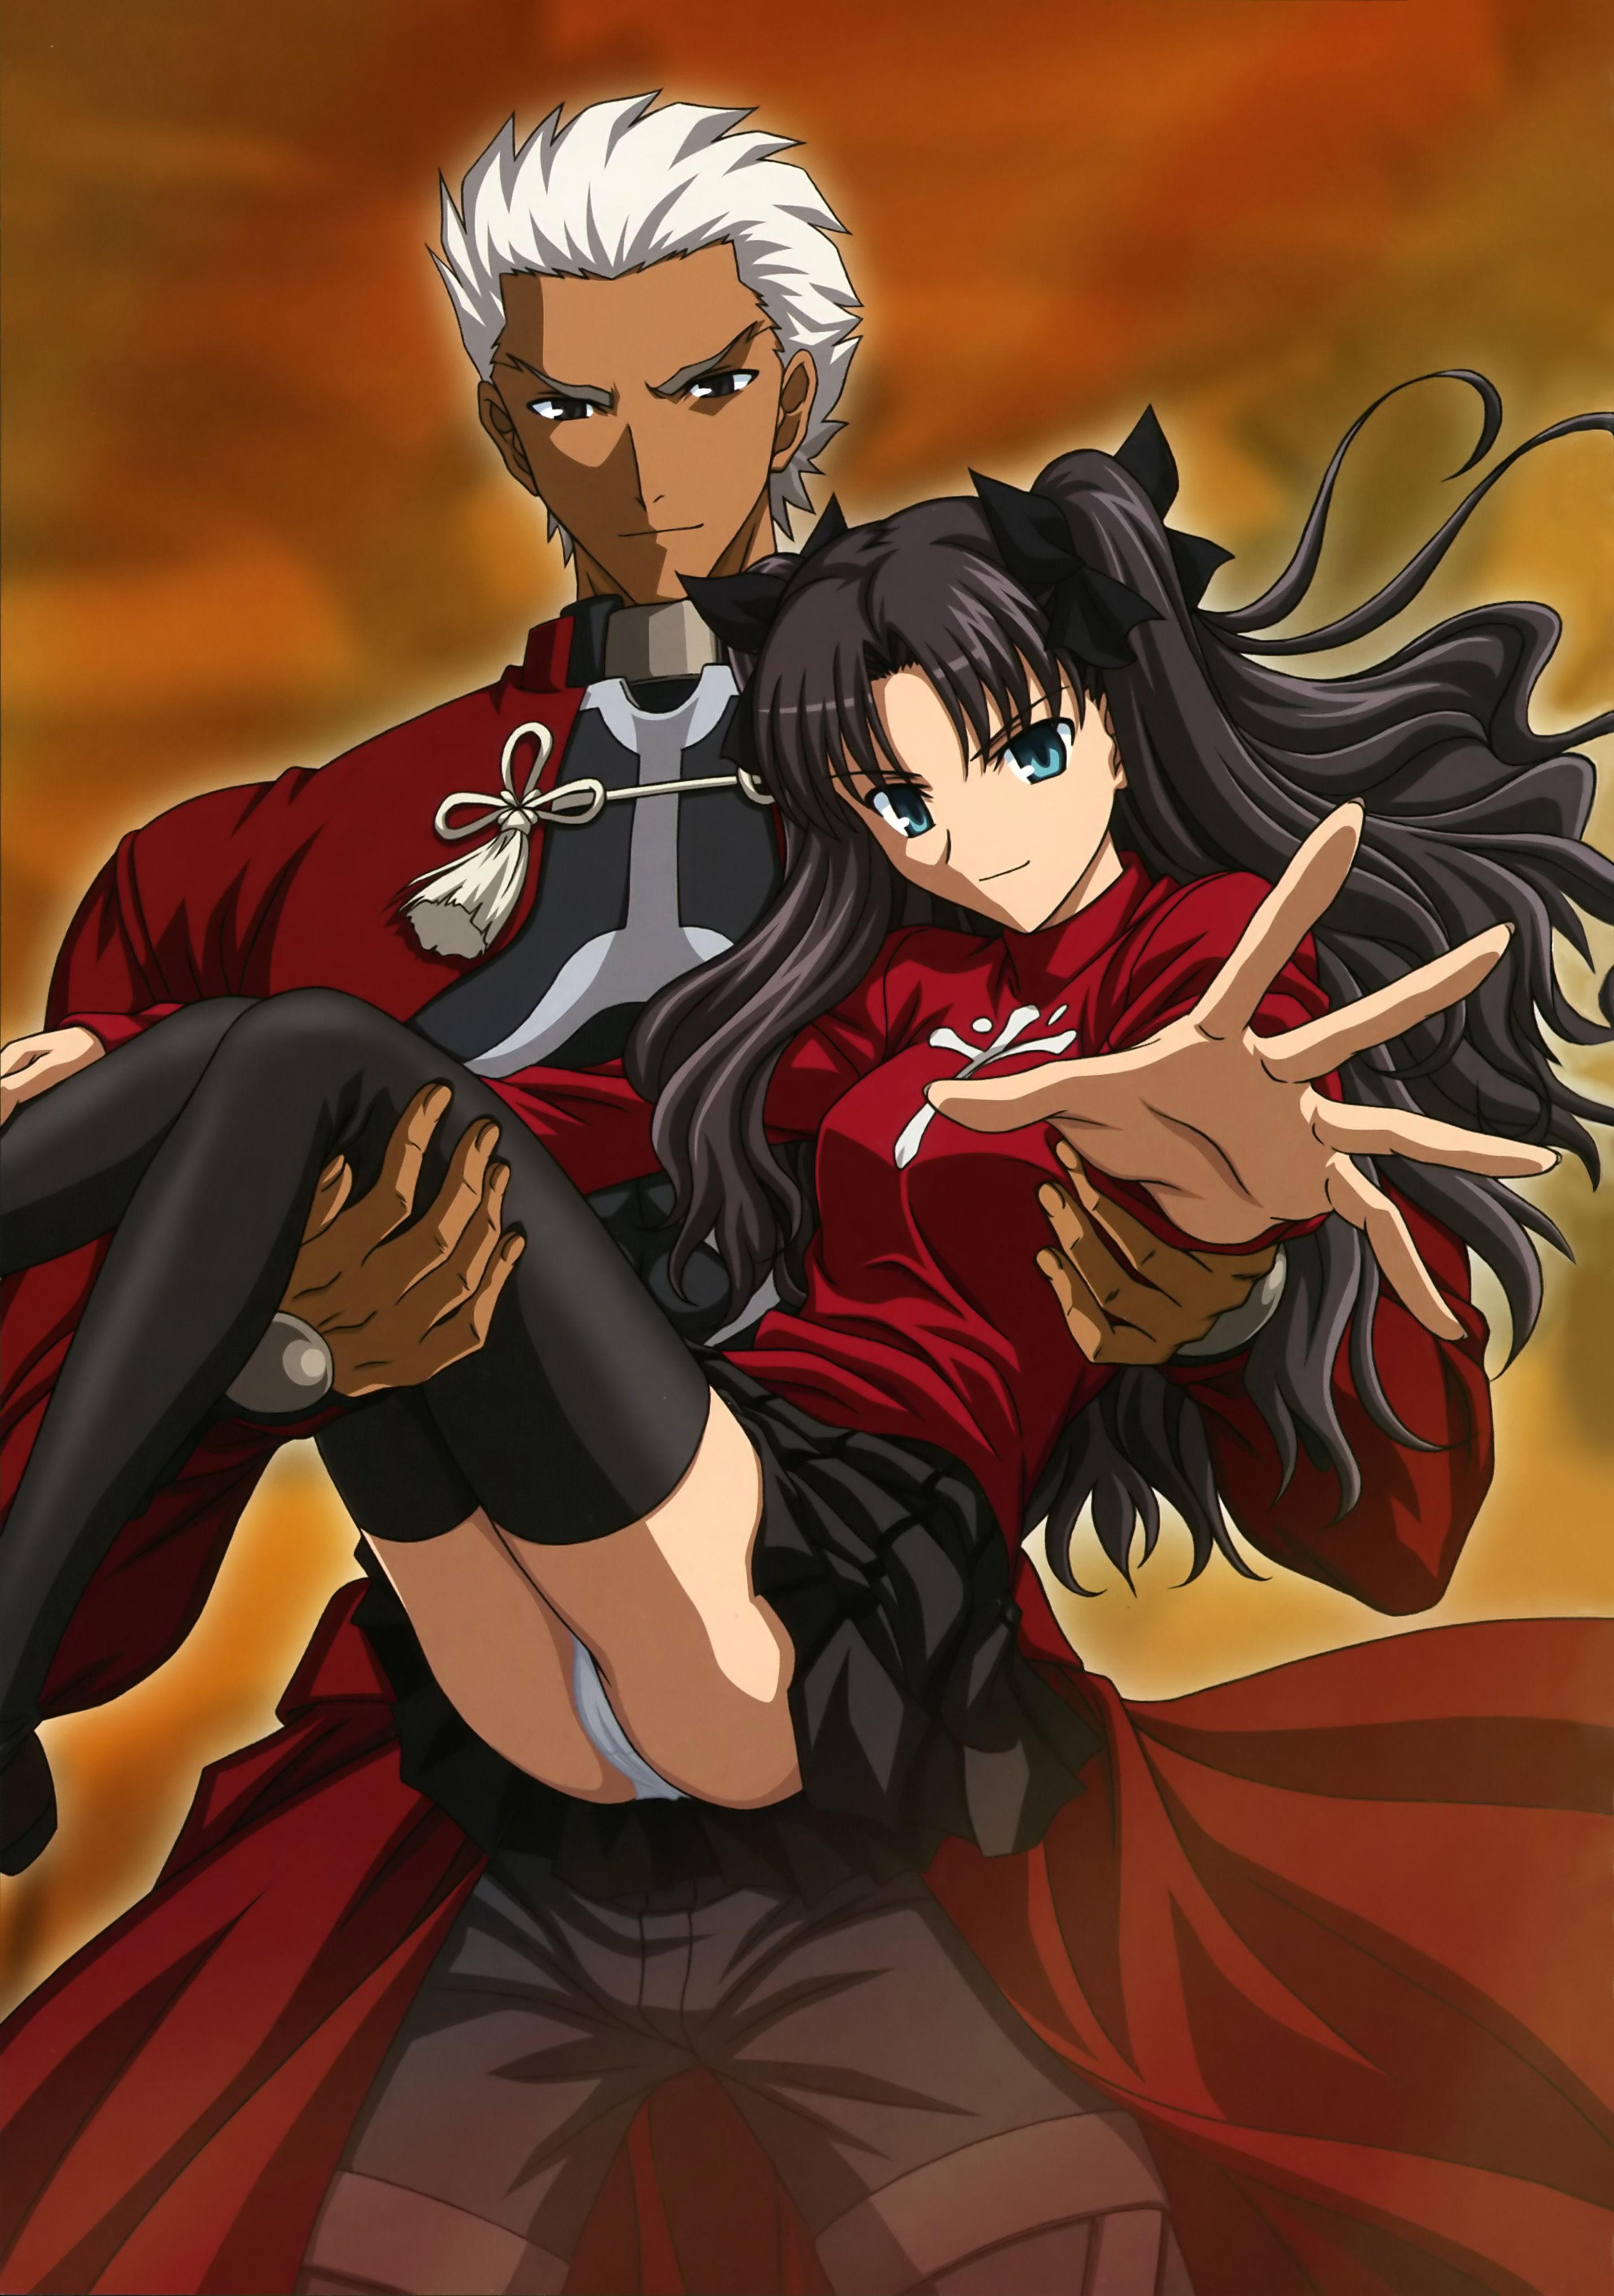 Archer & Rin - Fate/Stay Night | Fate Stay Night | Fate ...